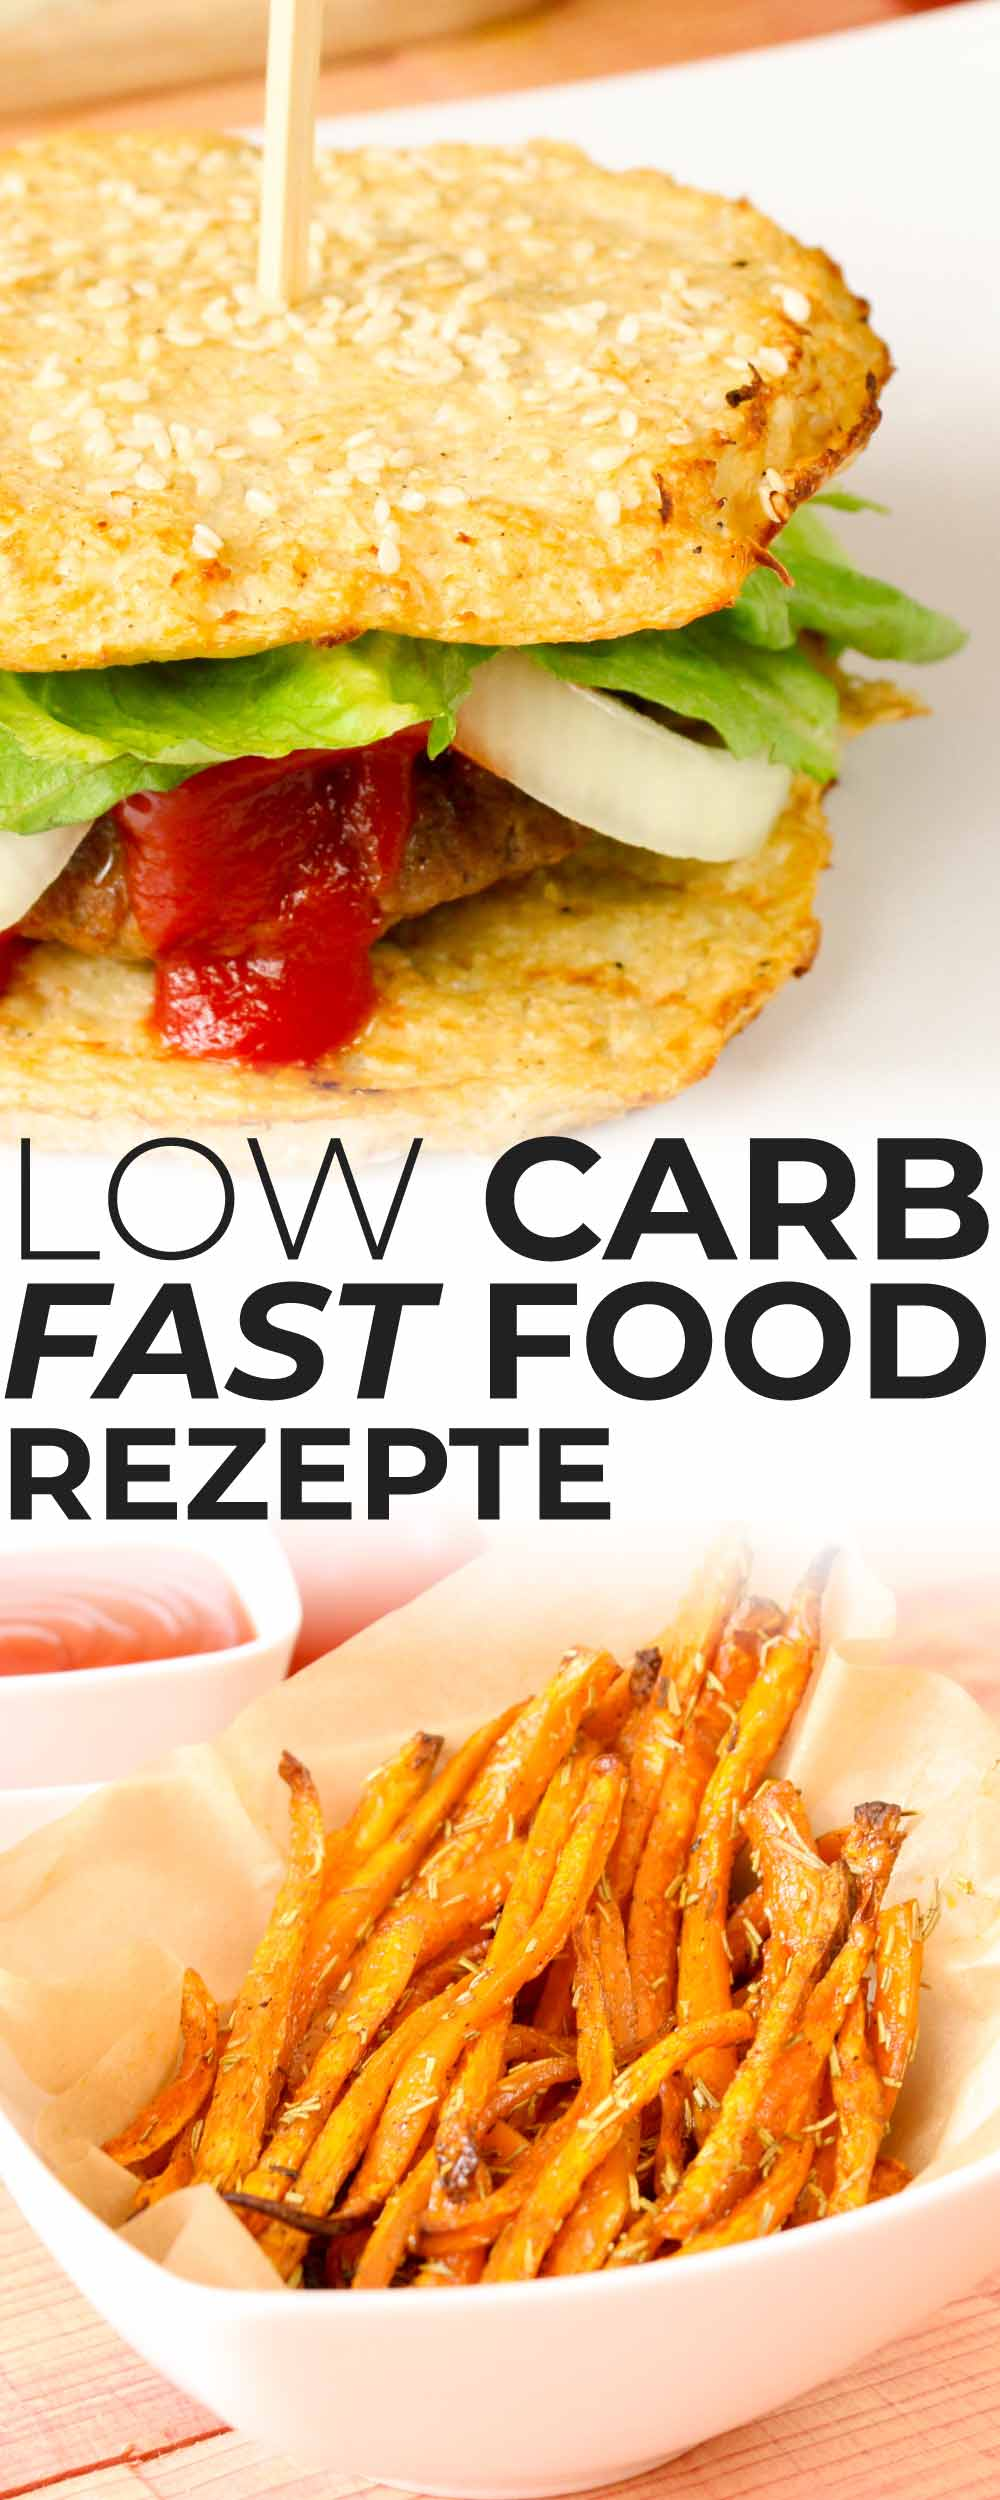 Low Carb Fast Food Rezepte